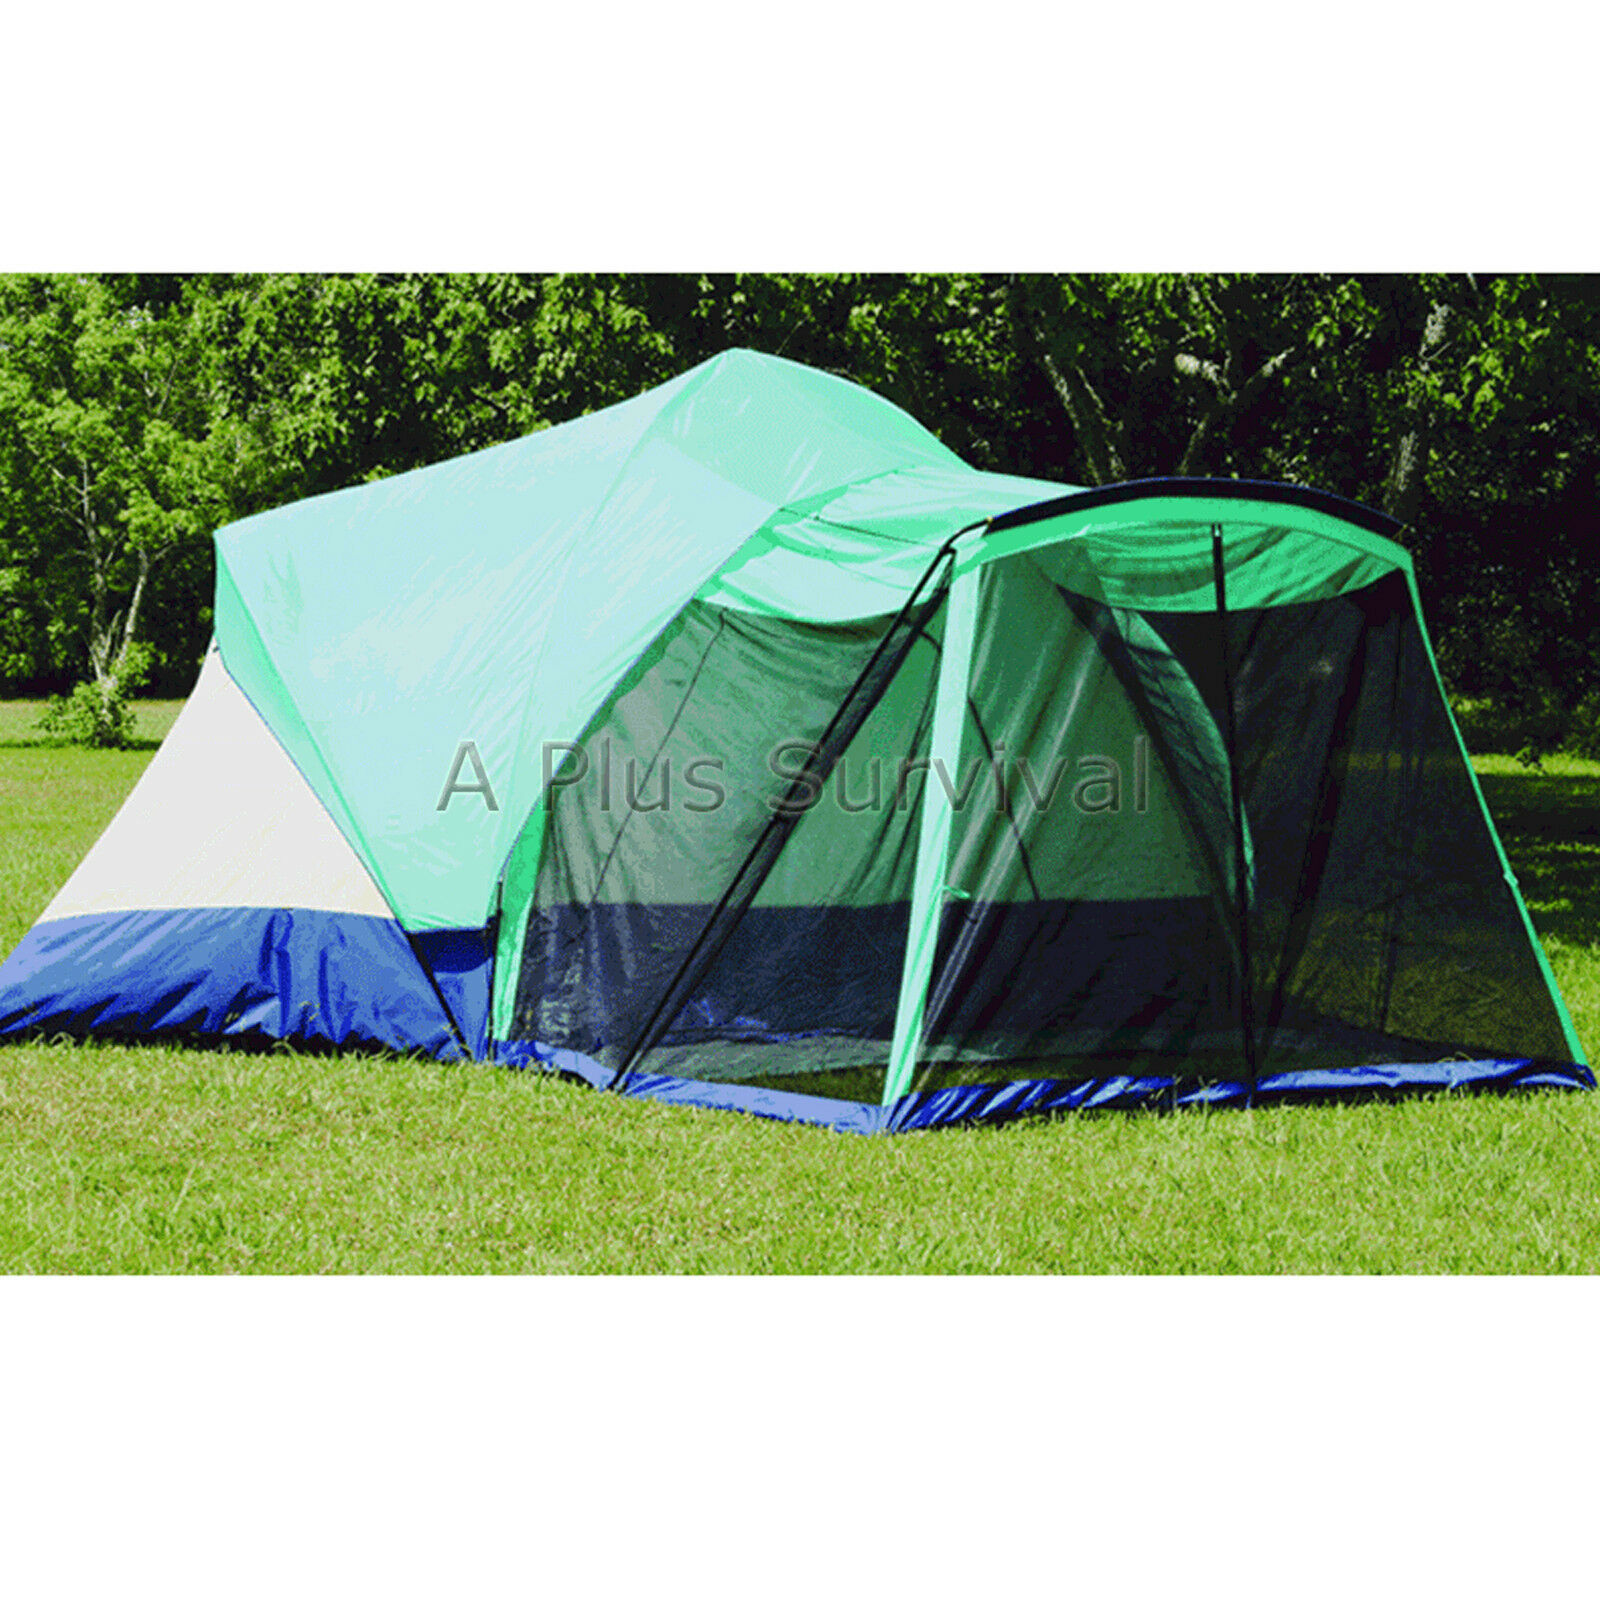 Texsport Meadow Breeze 8 Person Tent with Screen Porch